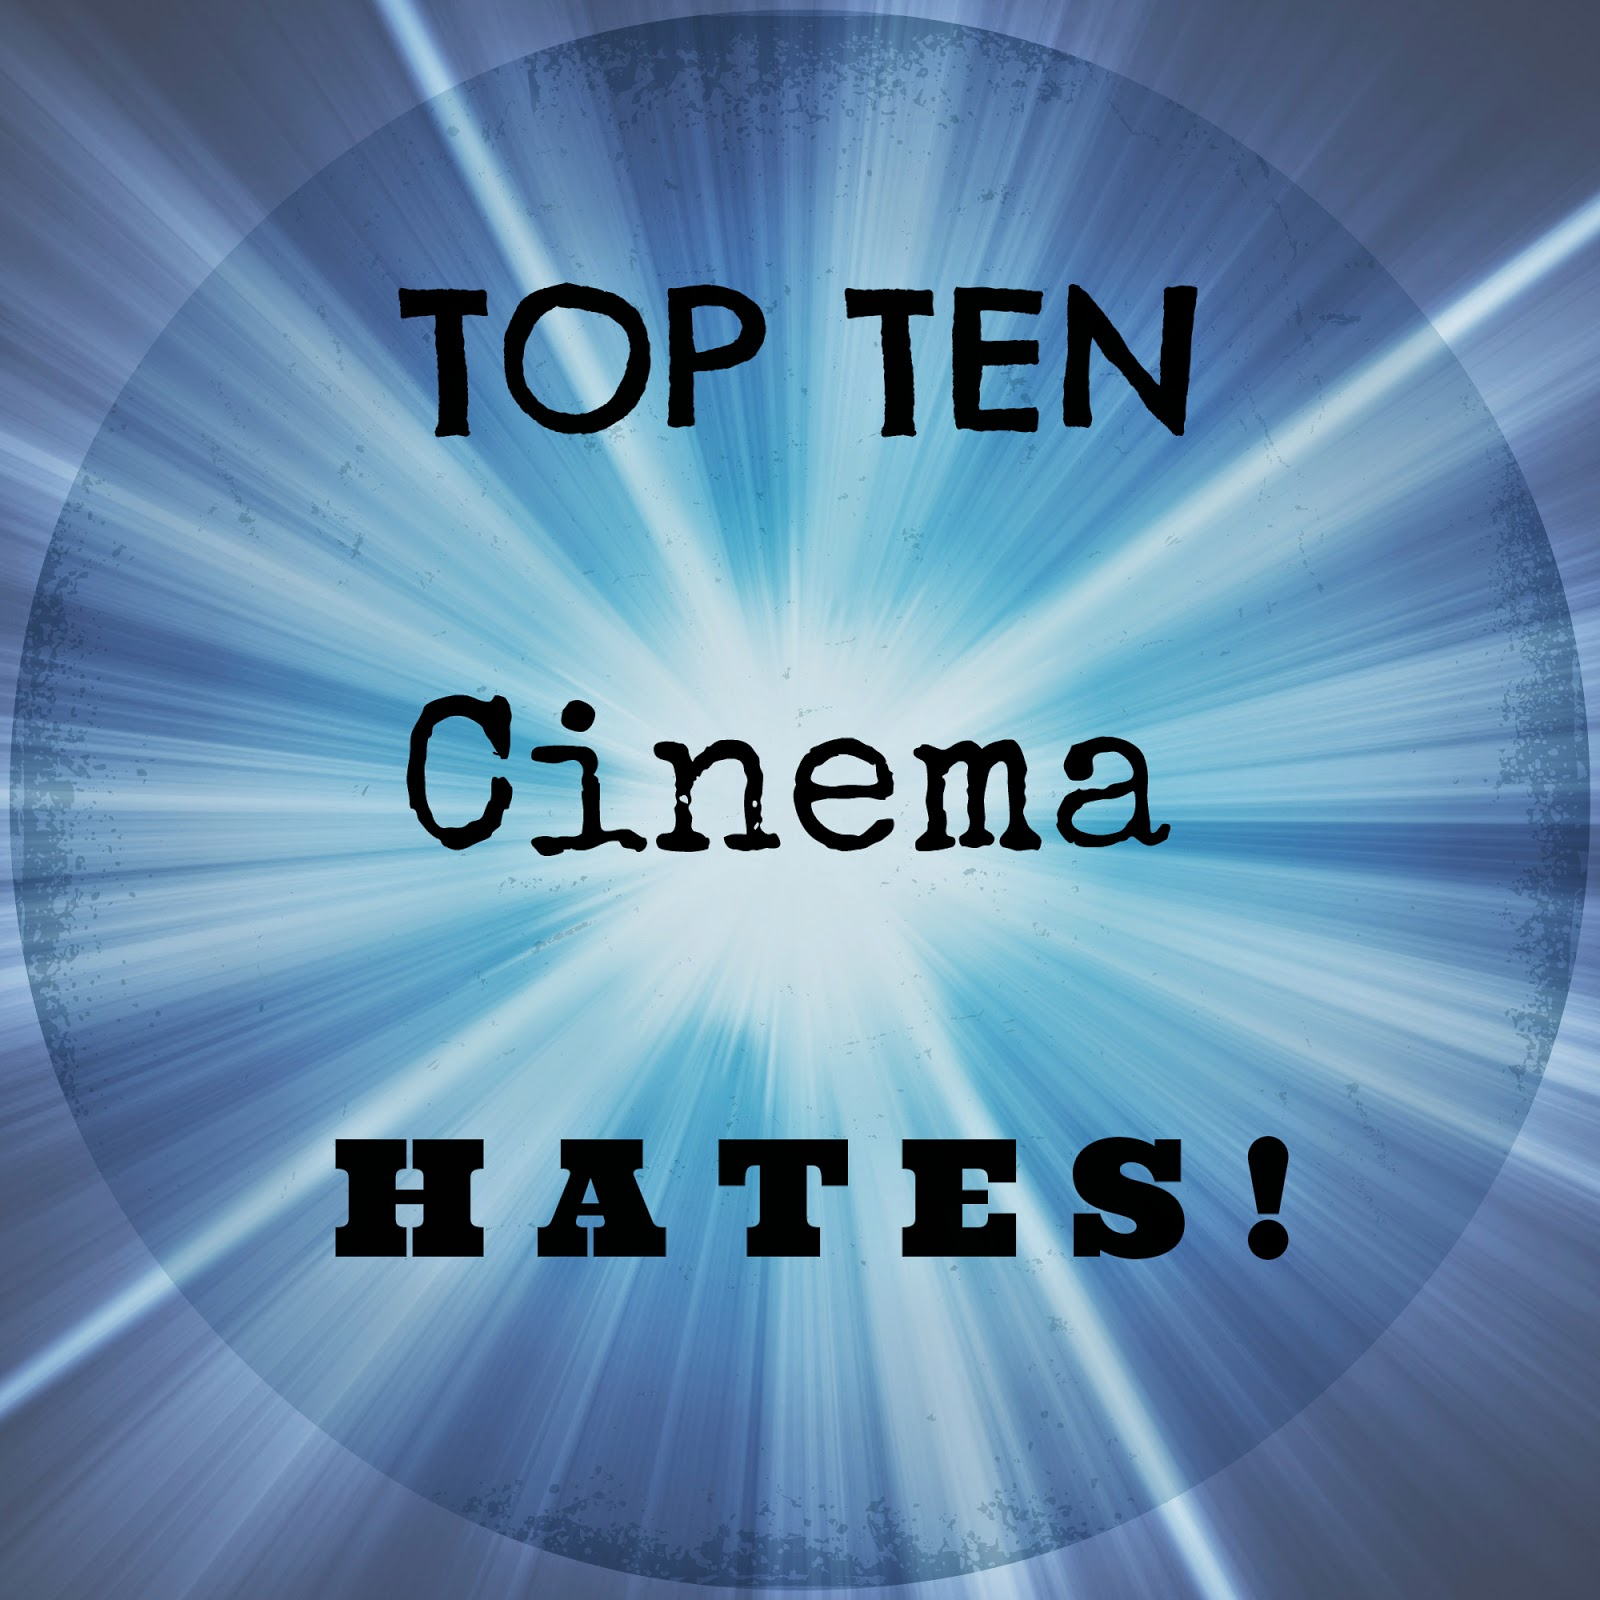 TOP TEN CINEMA HATES